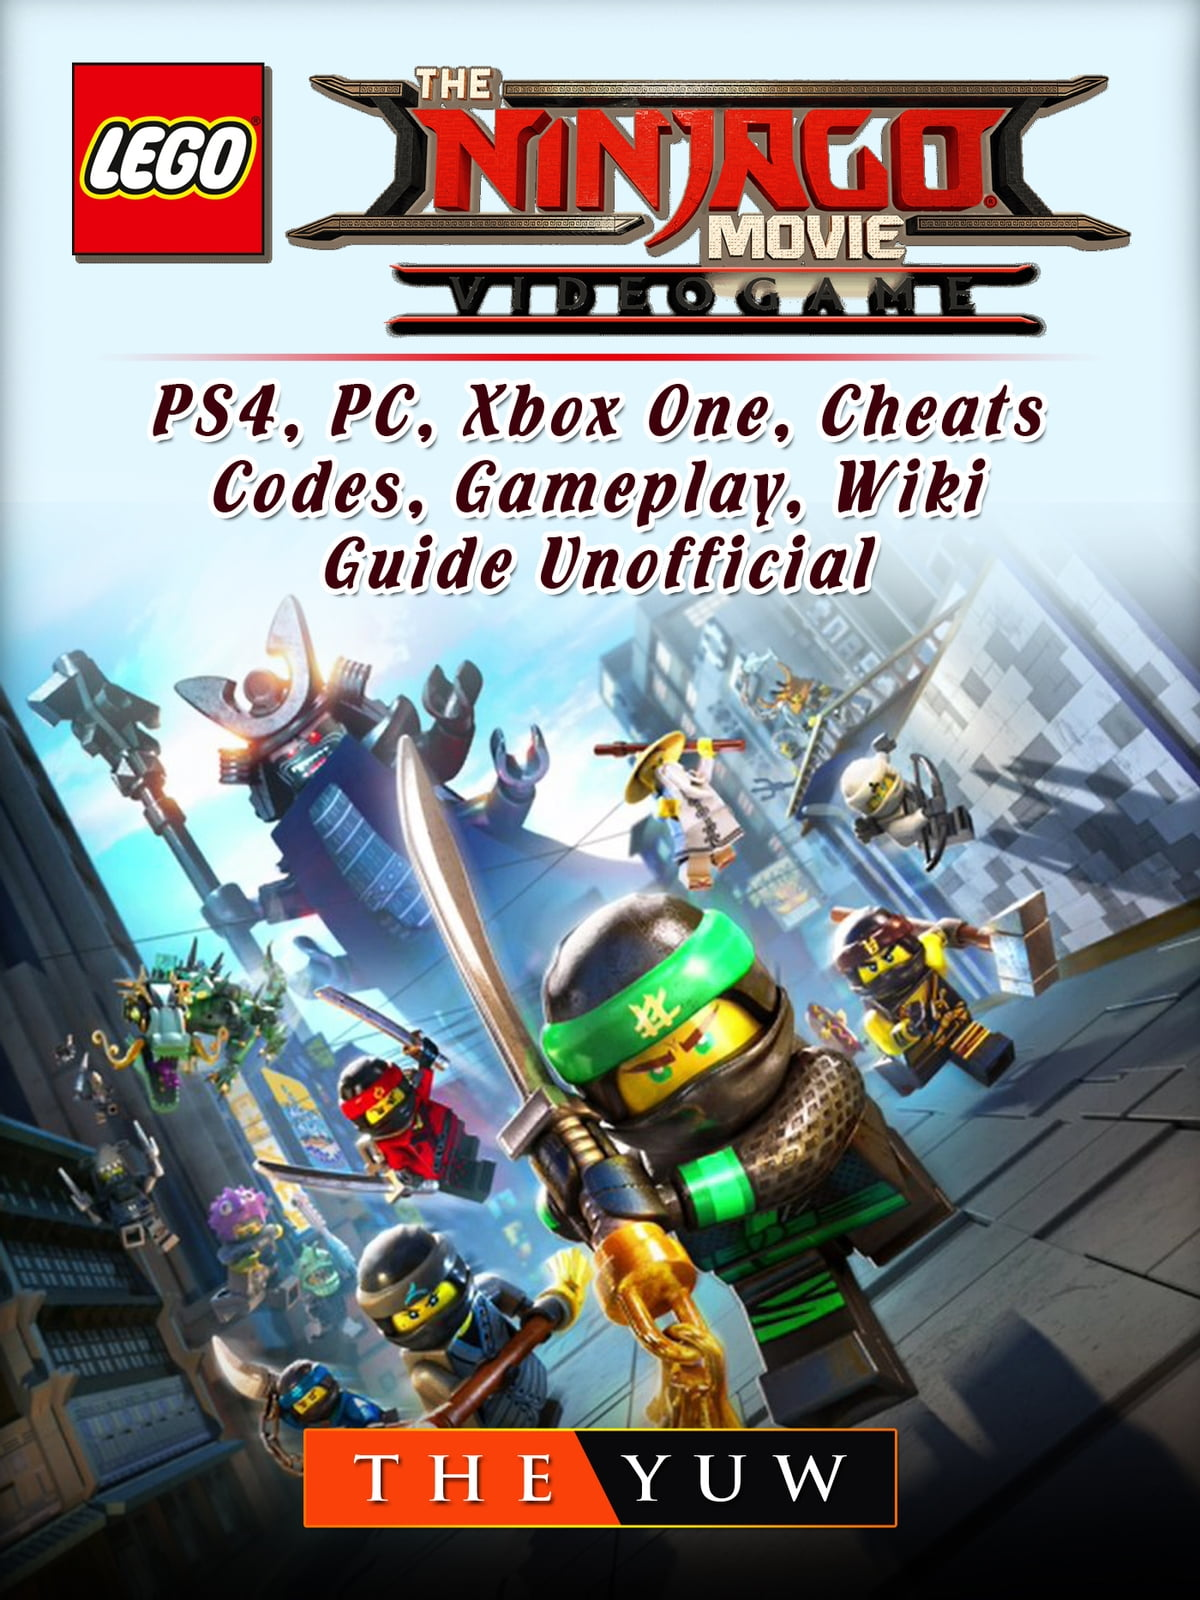 The Lego Ninjago Movie The Lego Ninjago Movie Video Game Ps4 Pc Xbox One Cheats Codes Gameplay Wiki Guide Unofficial Ebook By The Yuw Rakuten Kobo